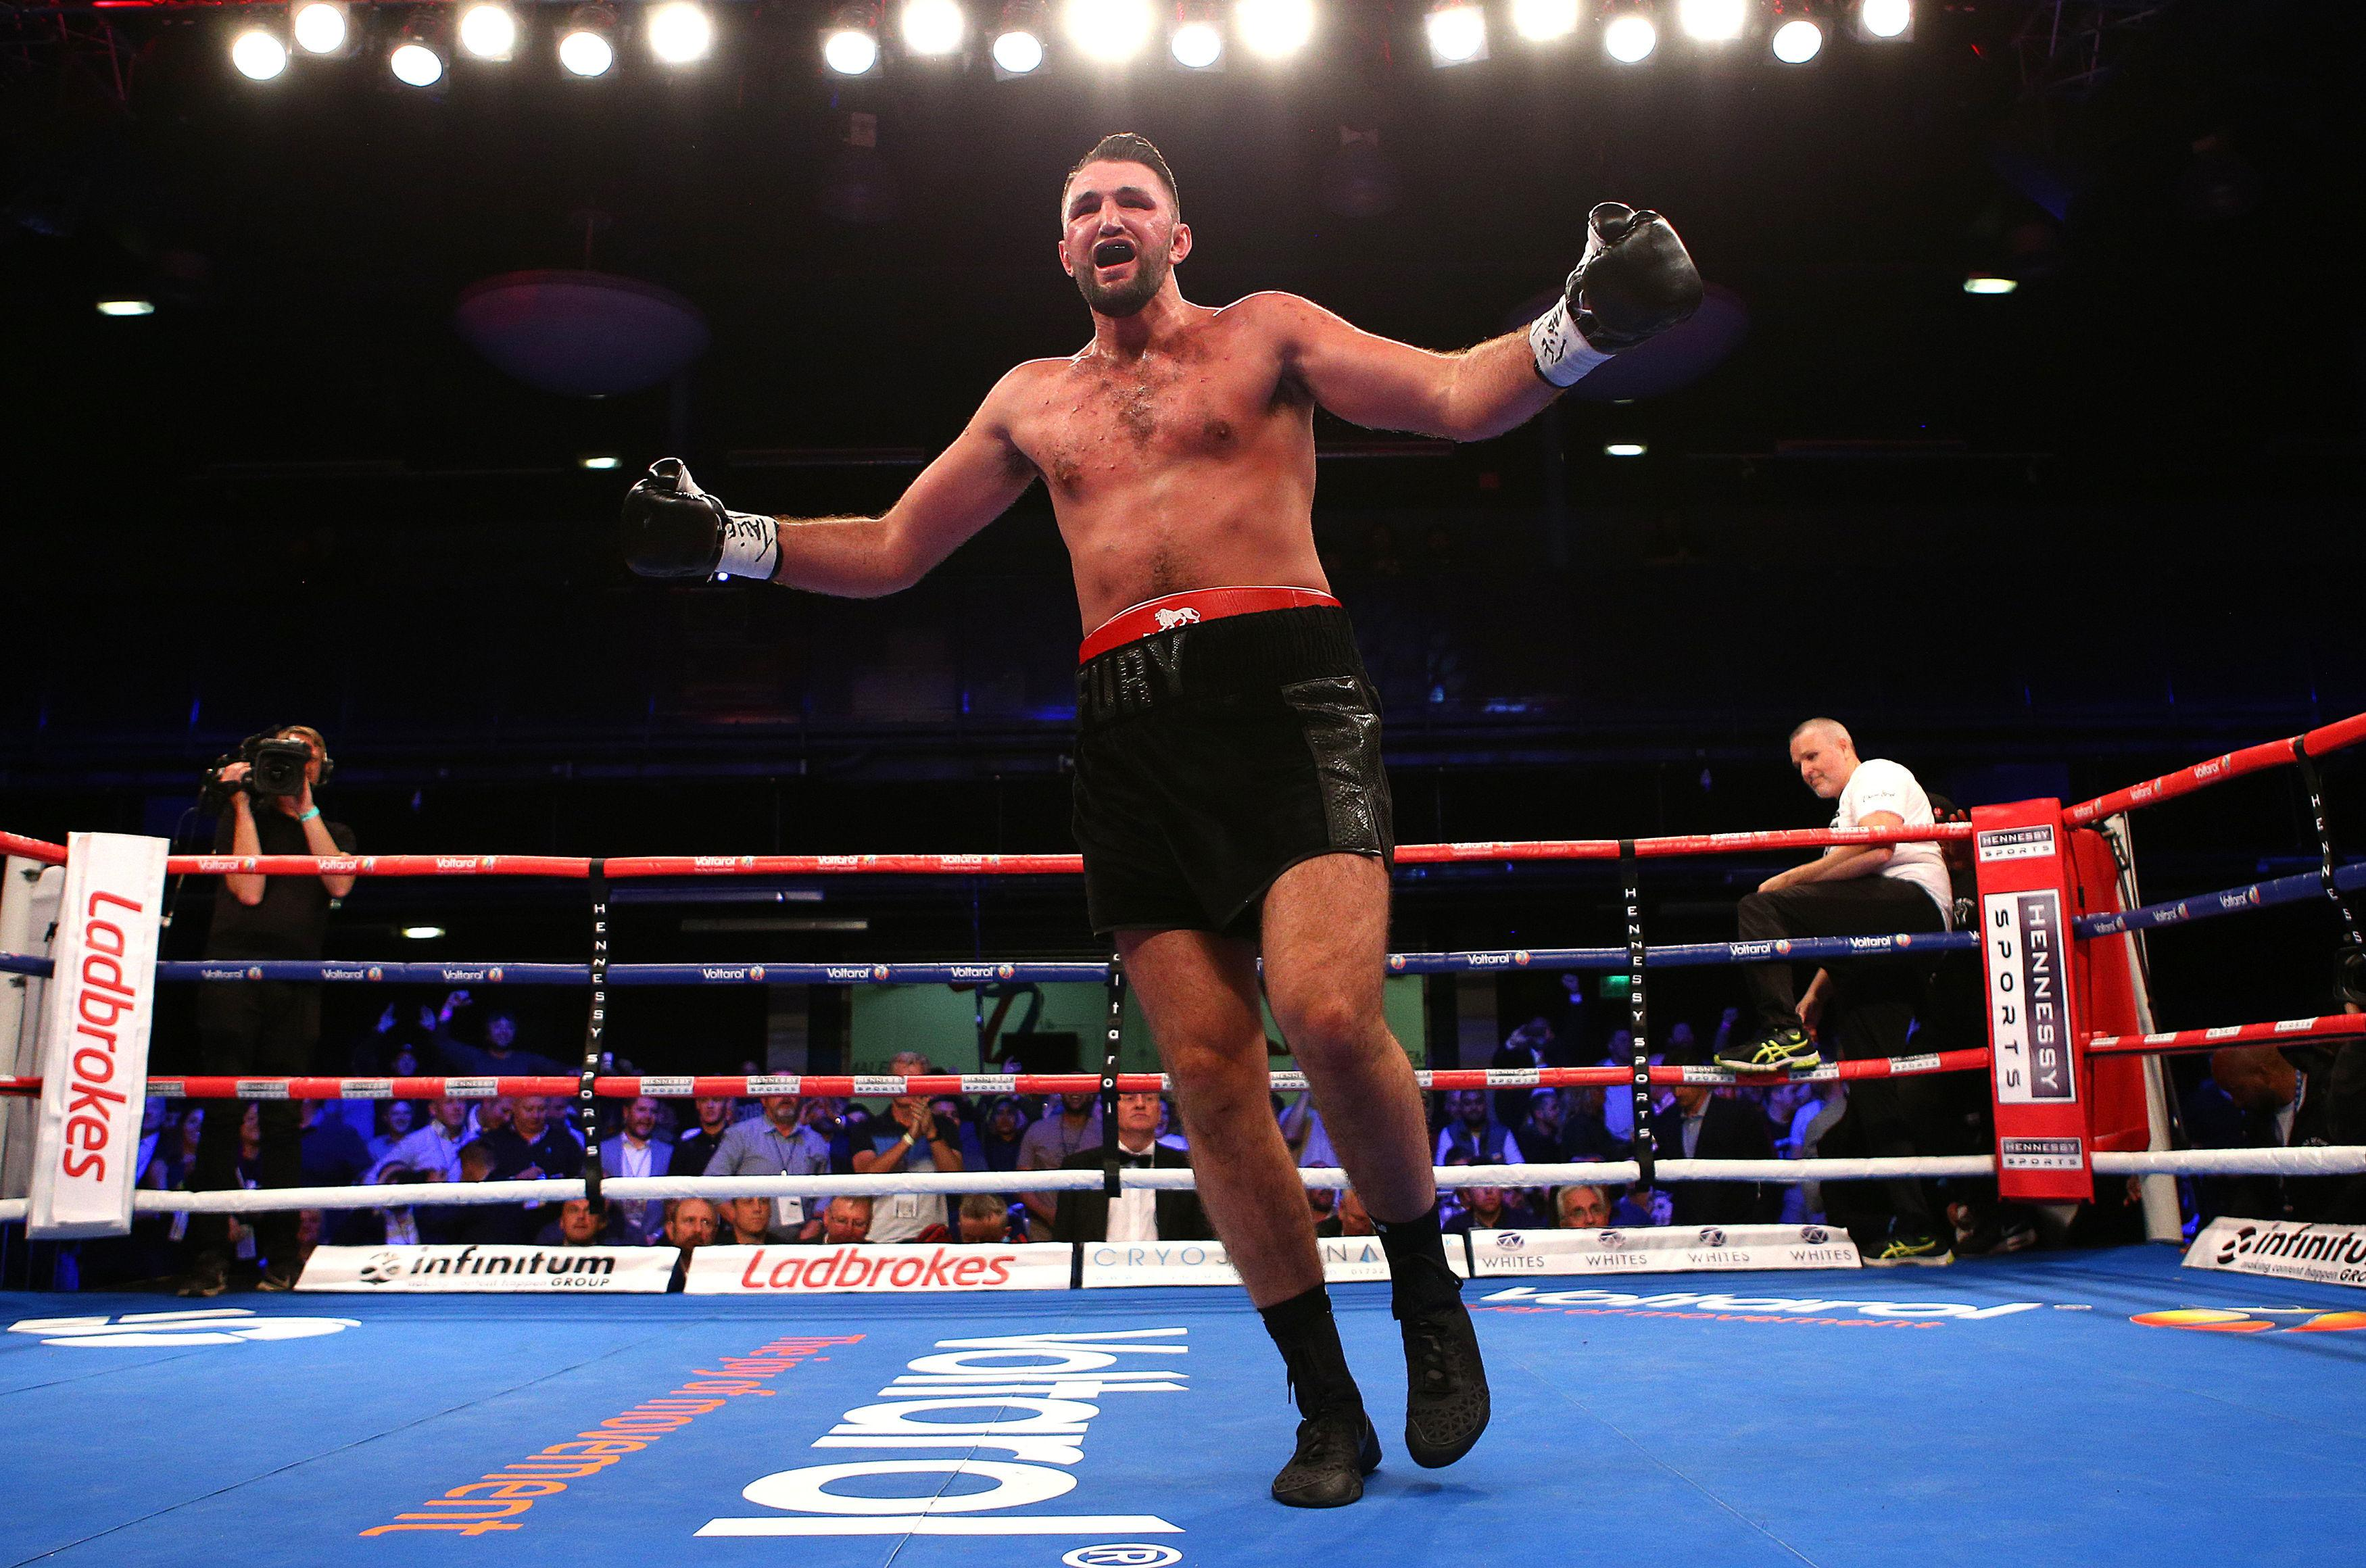 Hughie Fury is one fight off challenging for the IBF world title - currently held by Anthony Joshua